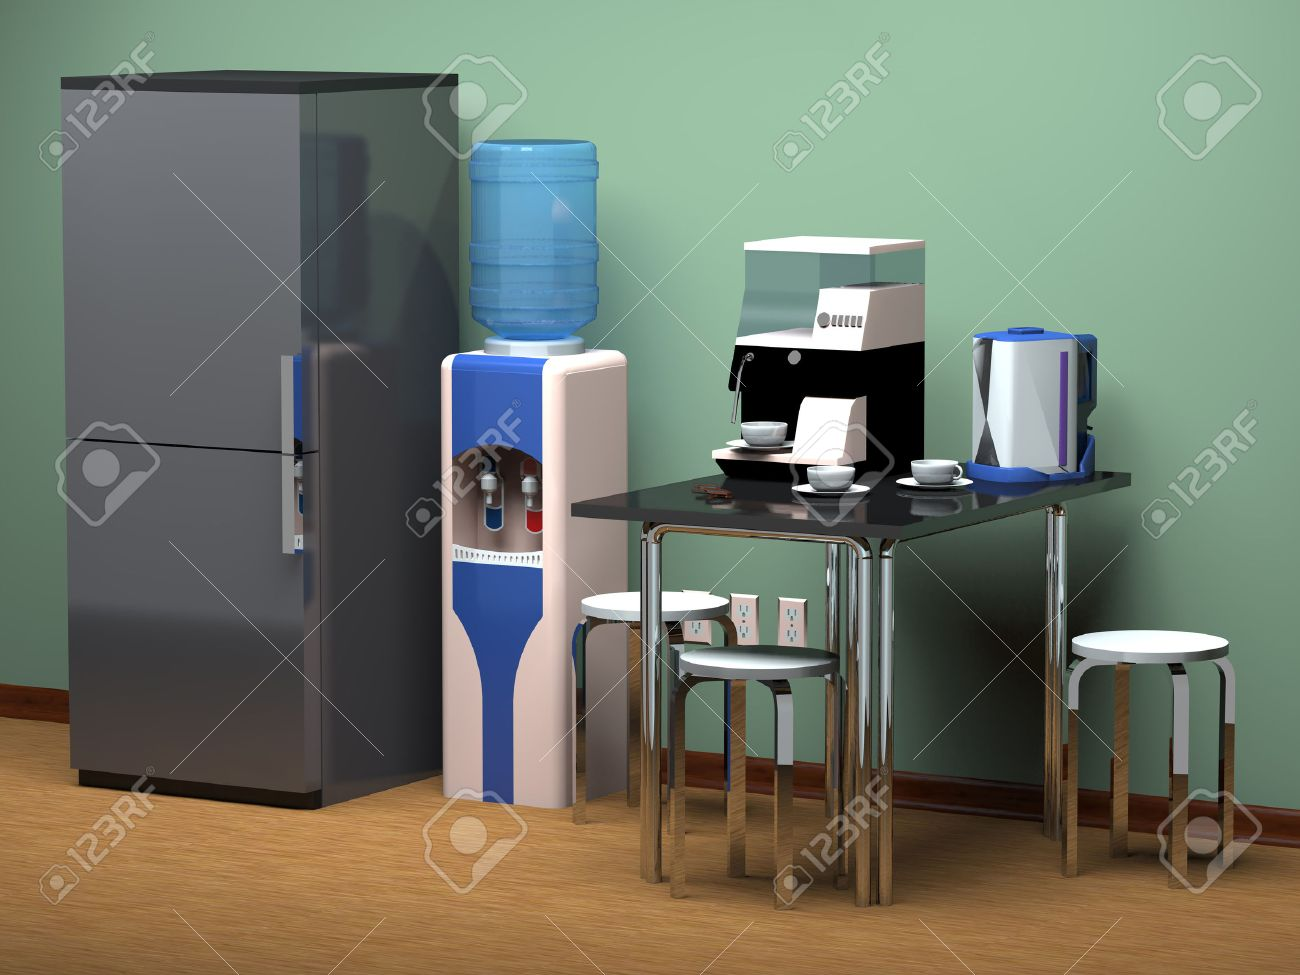 Refrigerator, kitchen table, drinking water cooler at the office. - 48899767